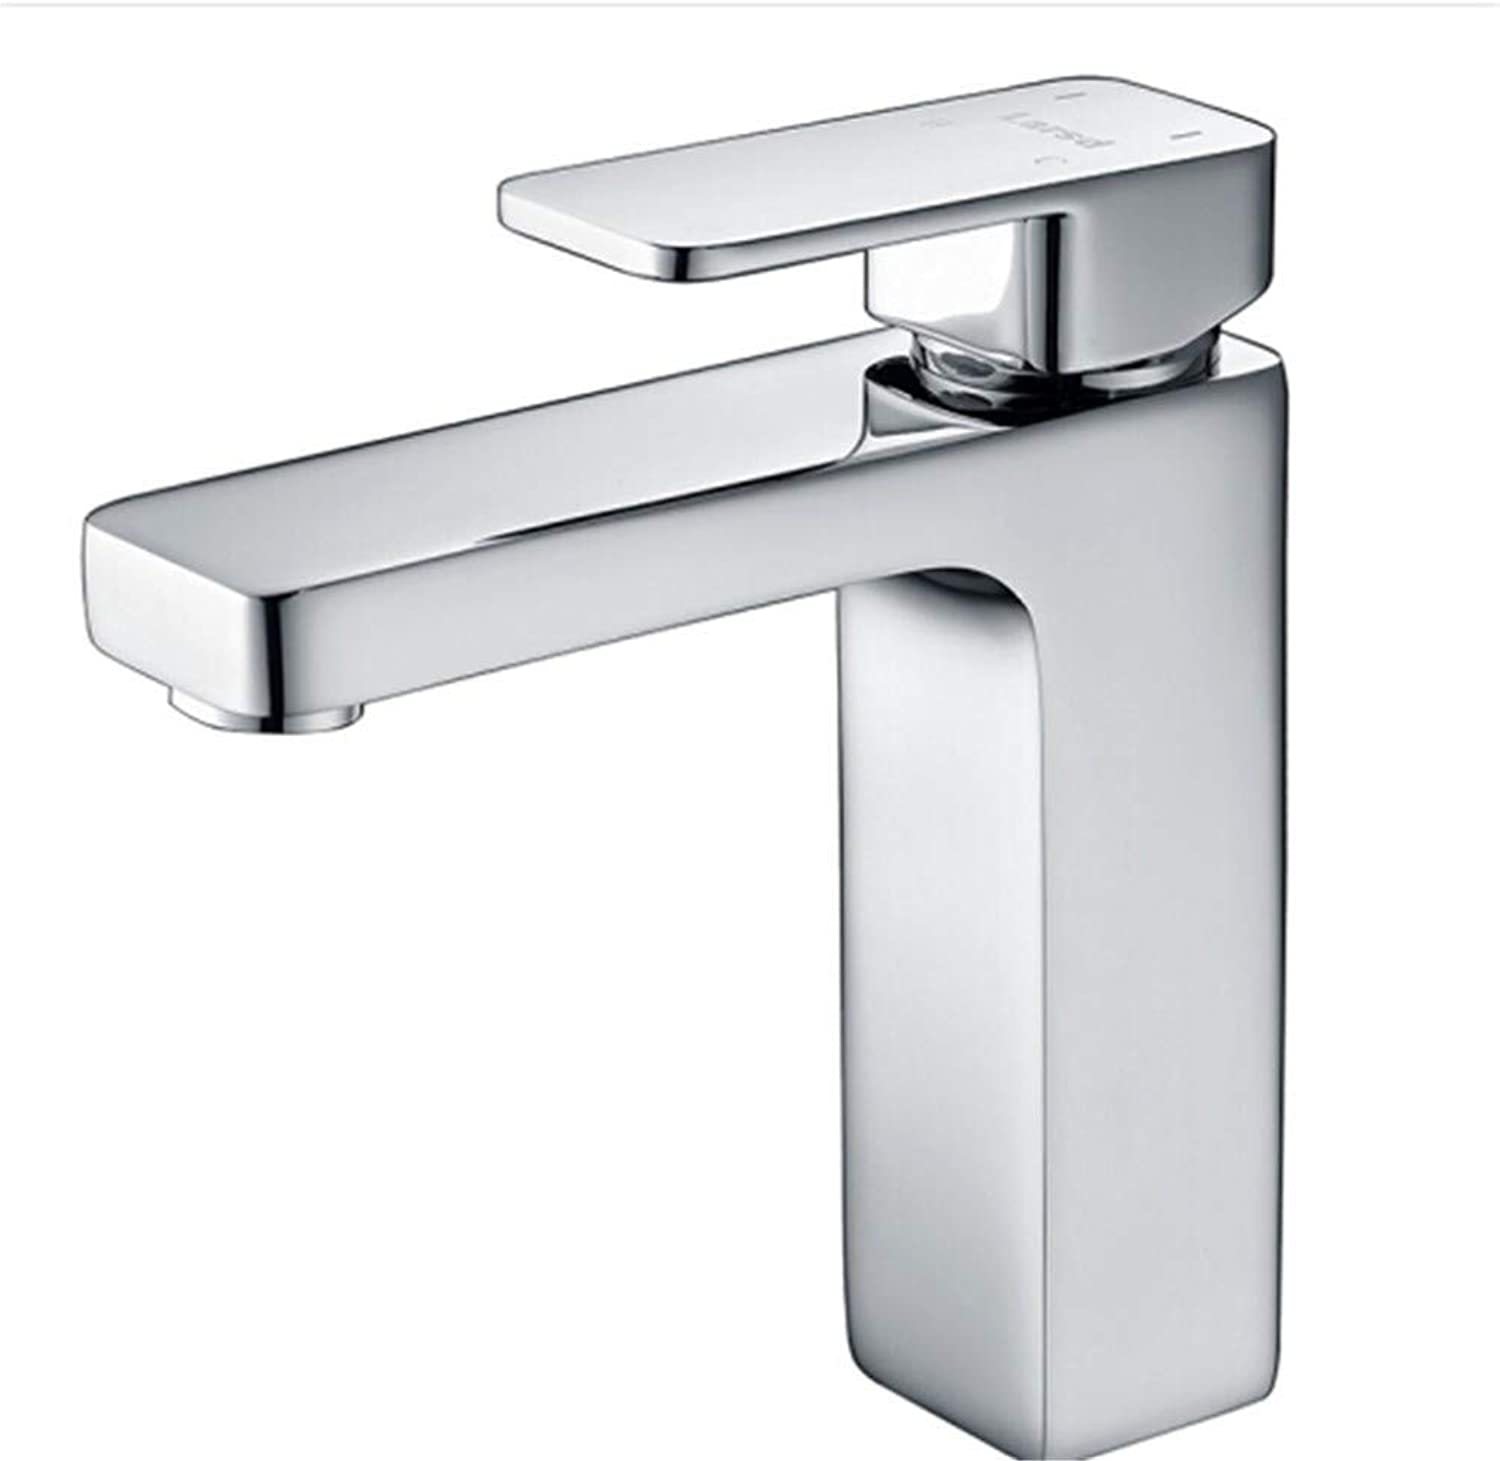 Water Tapdrinking Designer Archface Basin Faucet Cold and Hot Square Faucet Table Basin Bathroom Washbasin Faucet